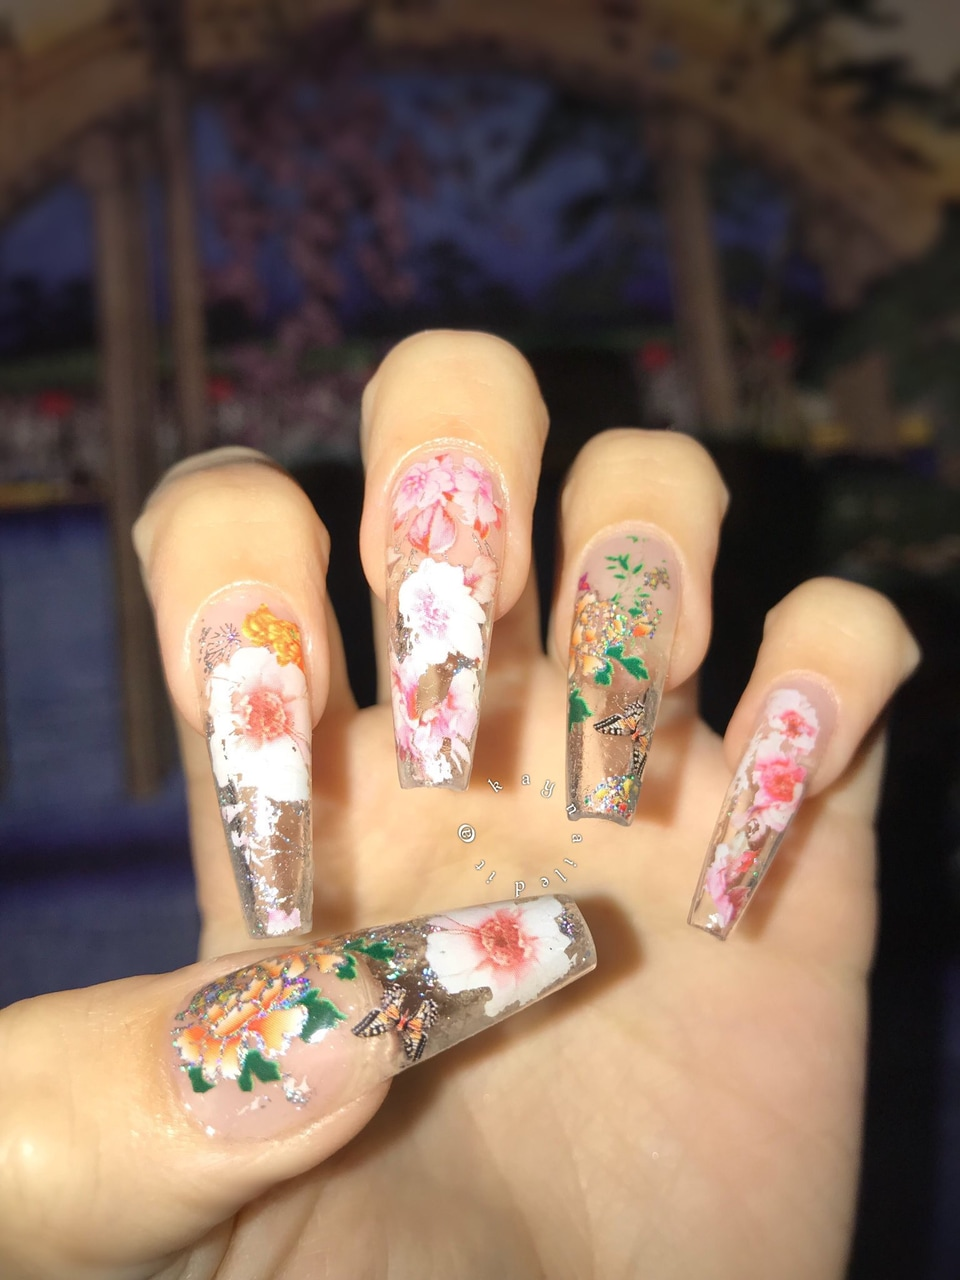 glass nail, clear nails, floral nails and coffin shape